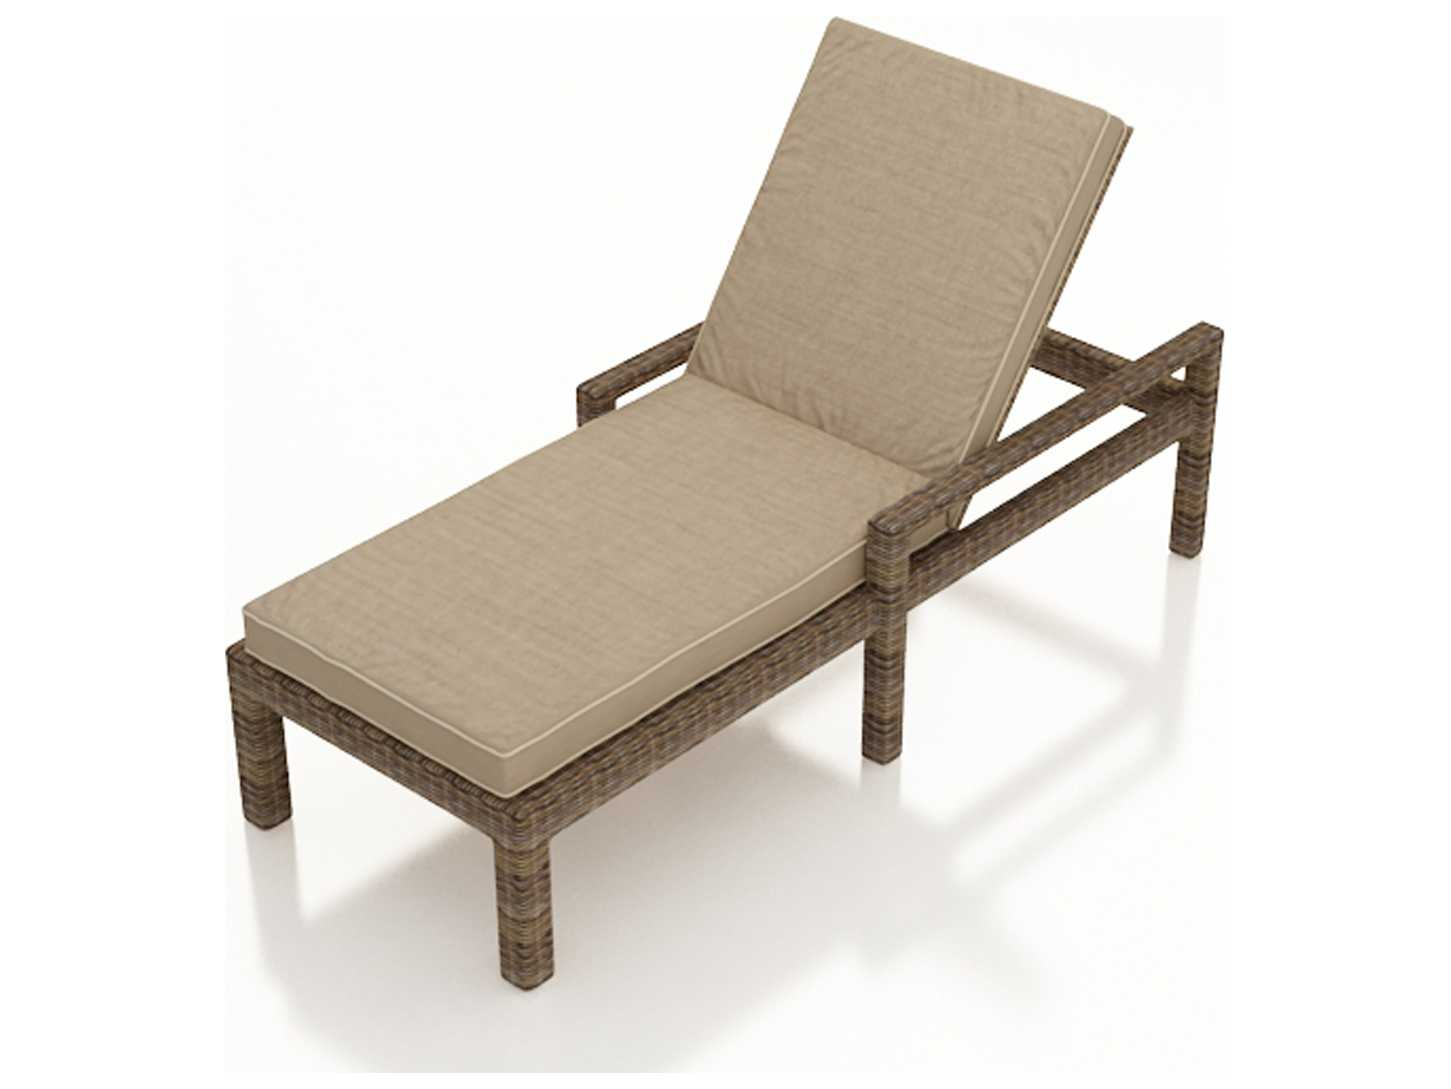 forever patio cypress wicker cushion single adjustable chaise lounge with arms fp cyp acl hr